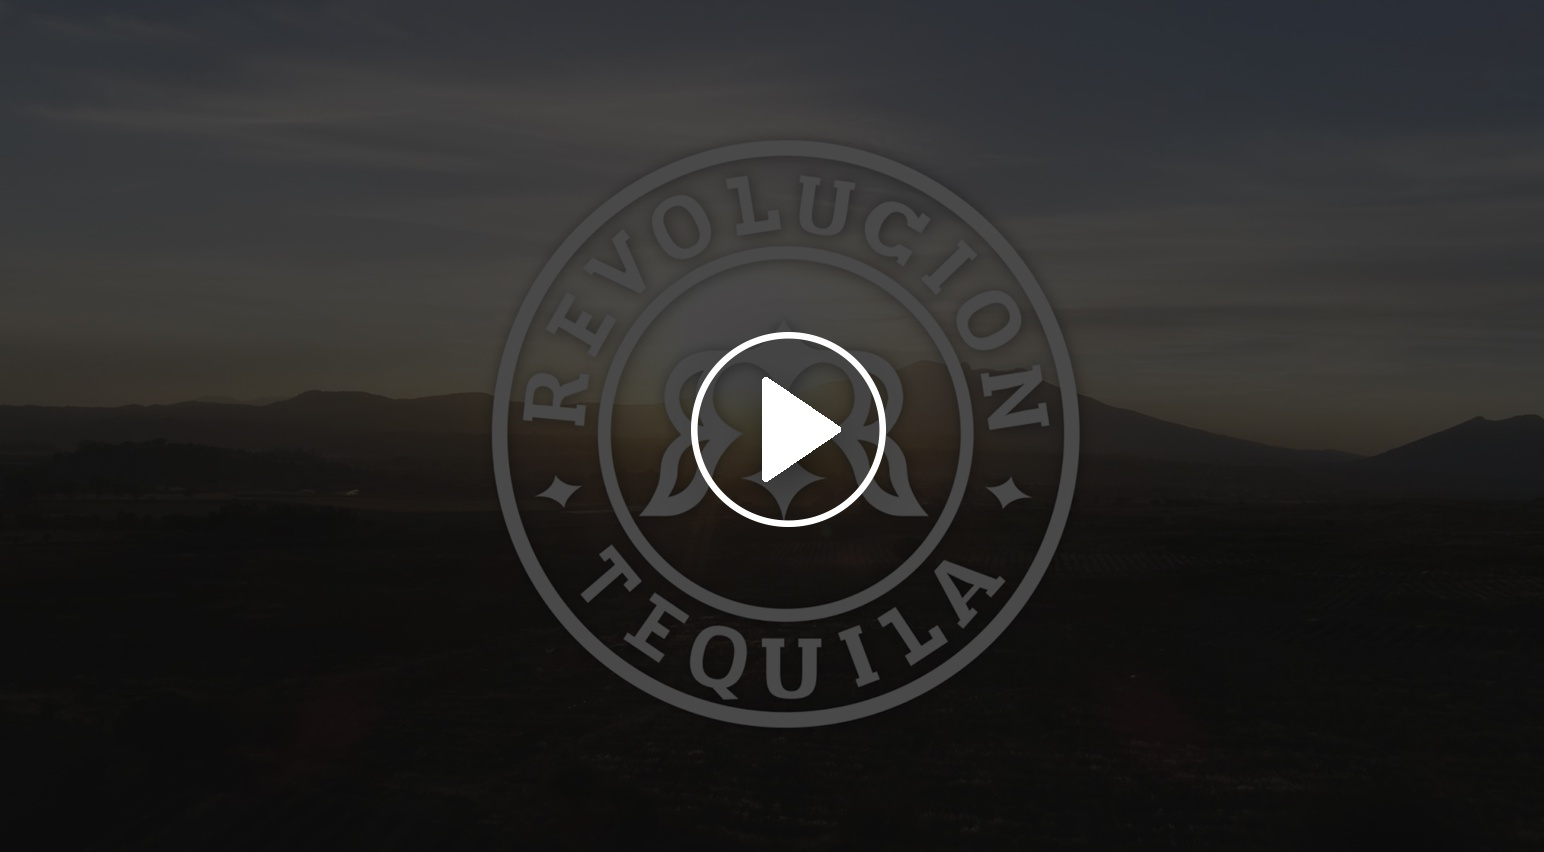 Taste of truth tequila revolucin tequila revolucion is made in a traditional distillery whose roots date back to 1904 buycottarizona